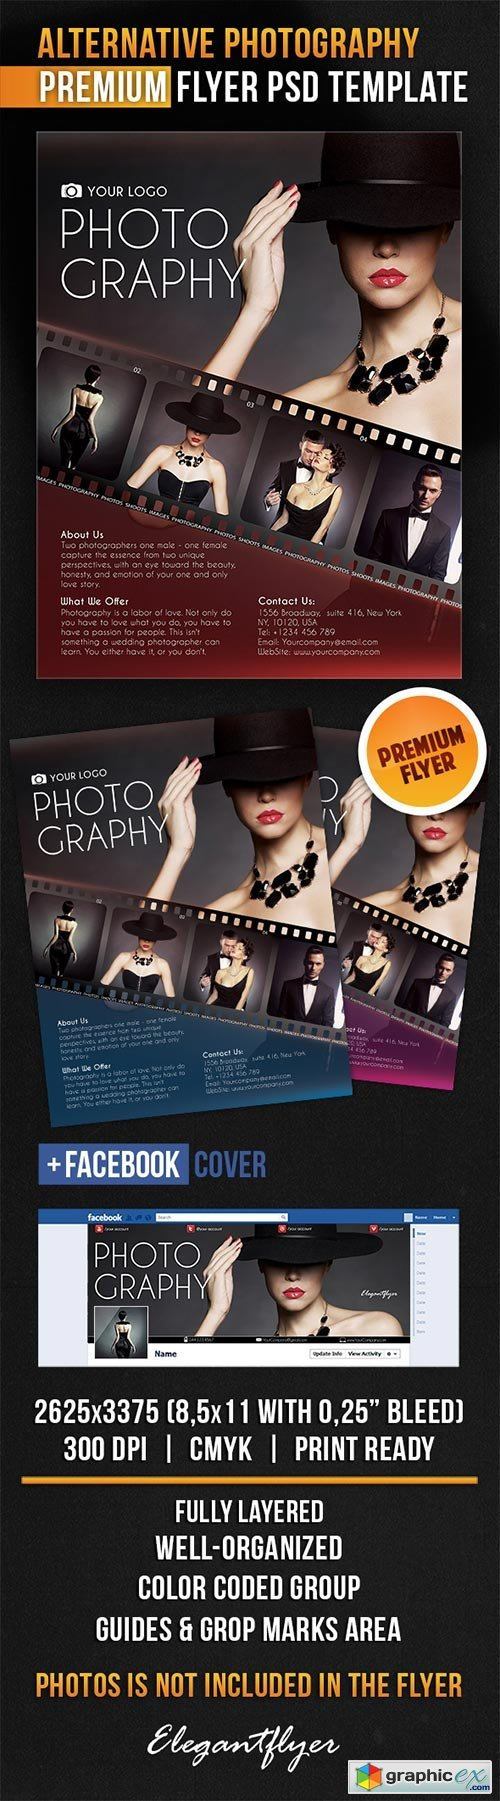 Alternative Photography Flyer PSD Template + Facebook Cover